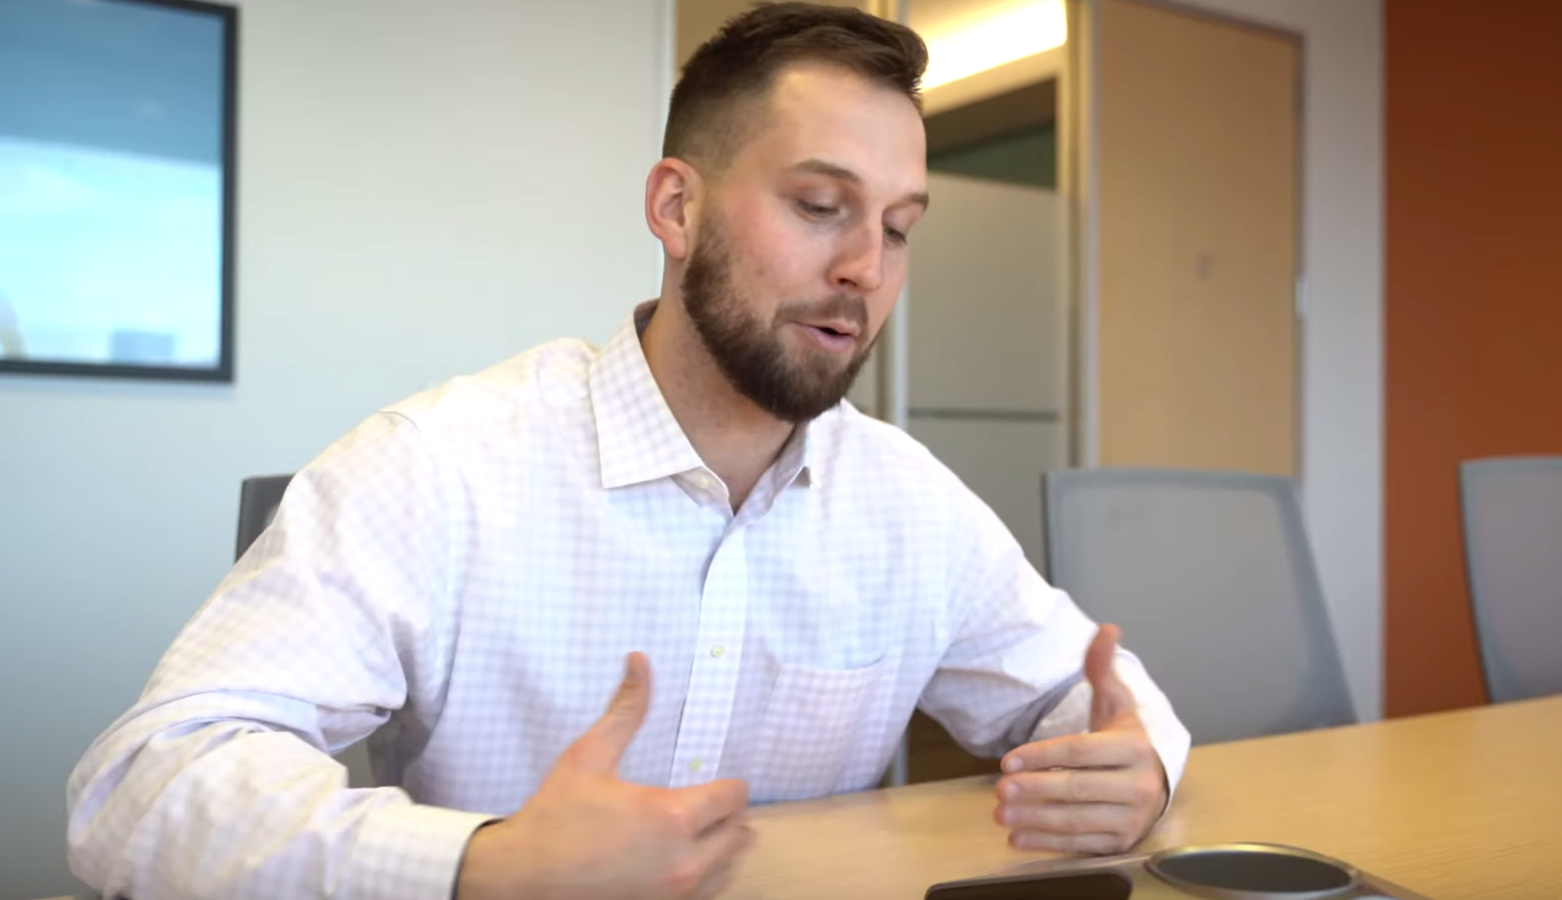 This Parody Of Every Office Interaction You've Ever Had Is So On Point It's Painful